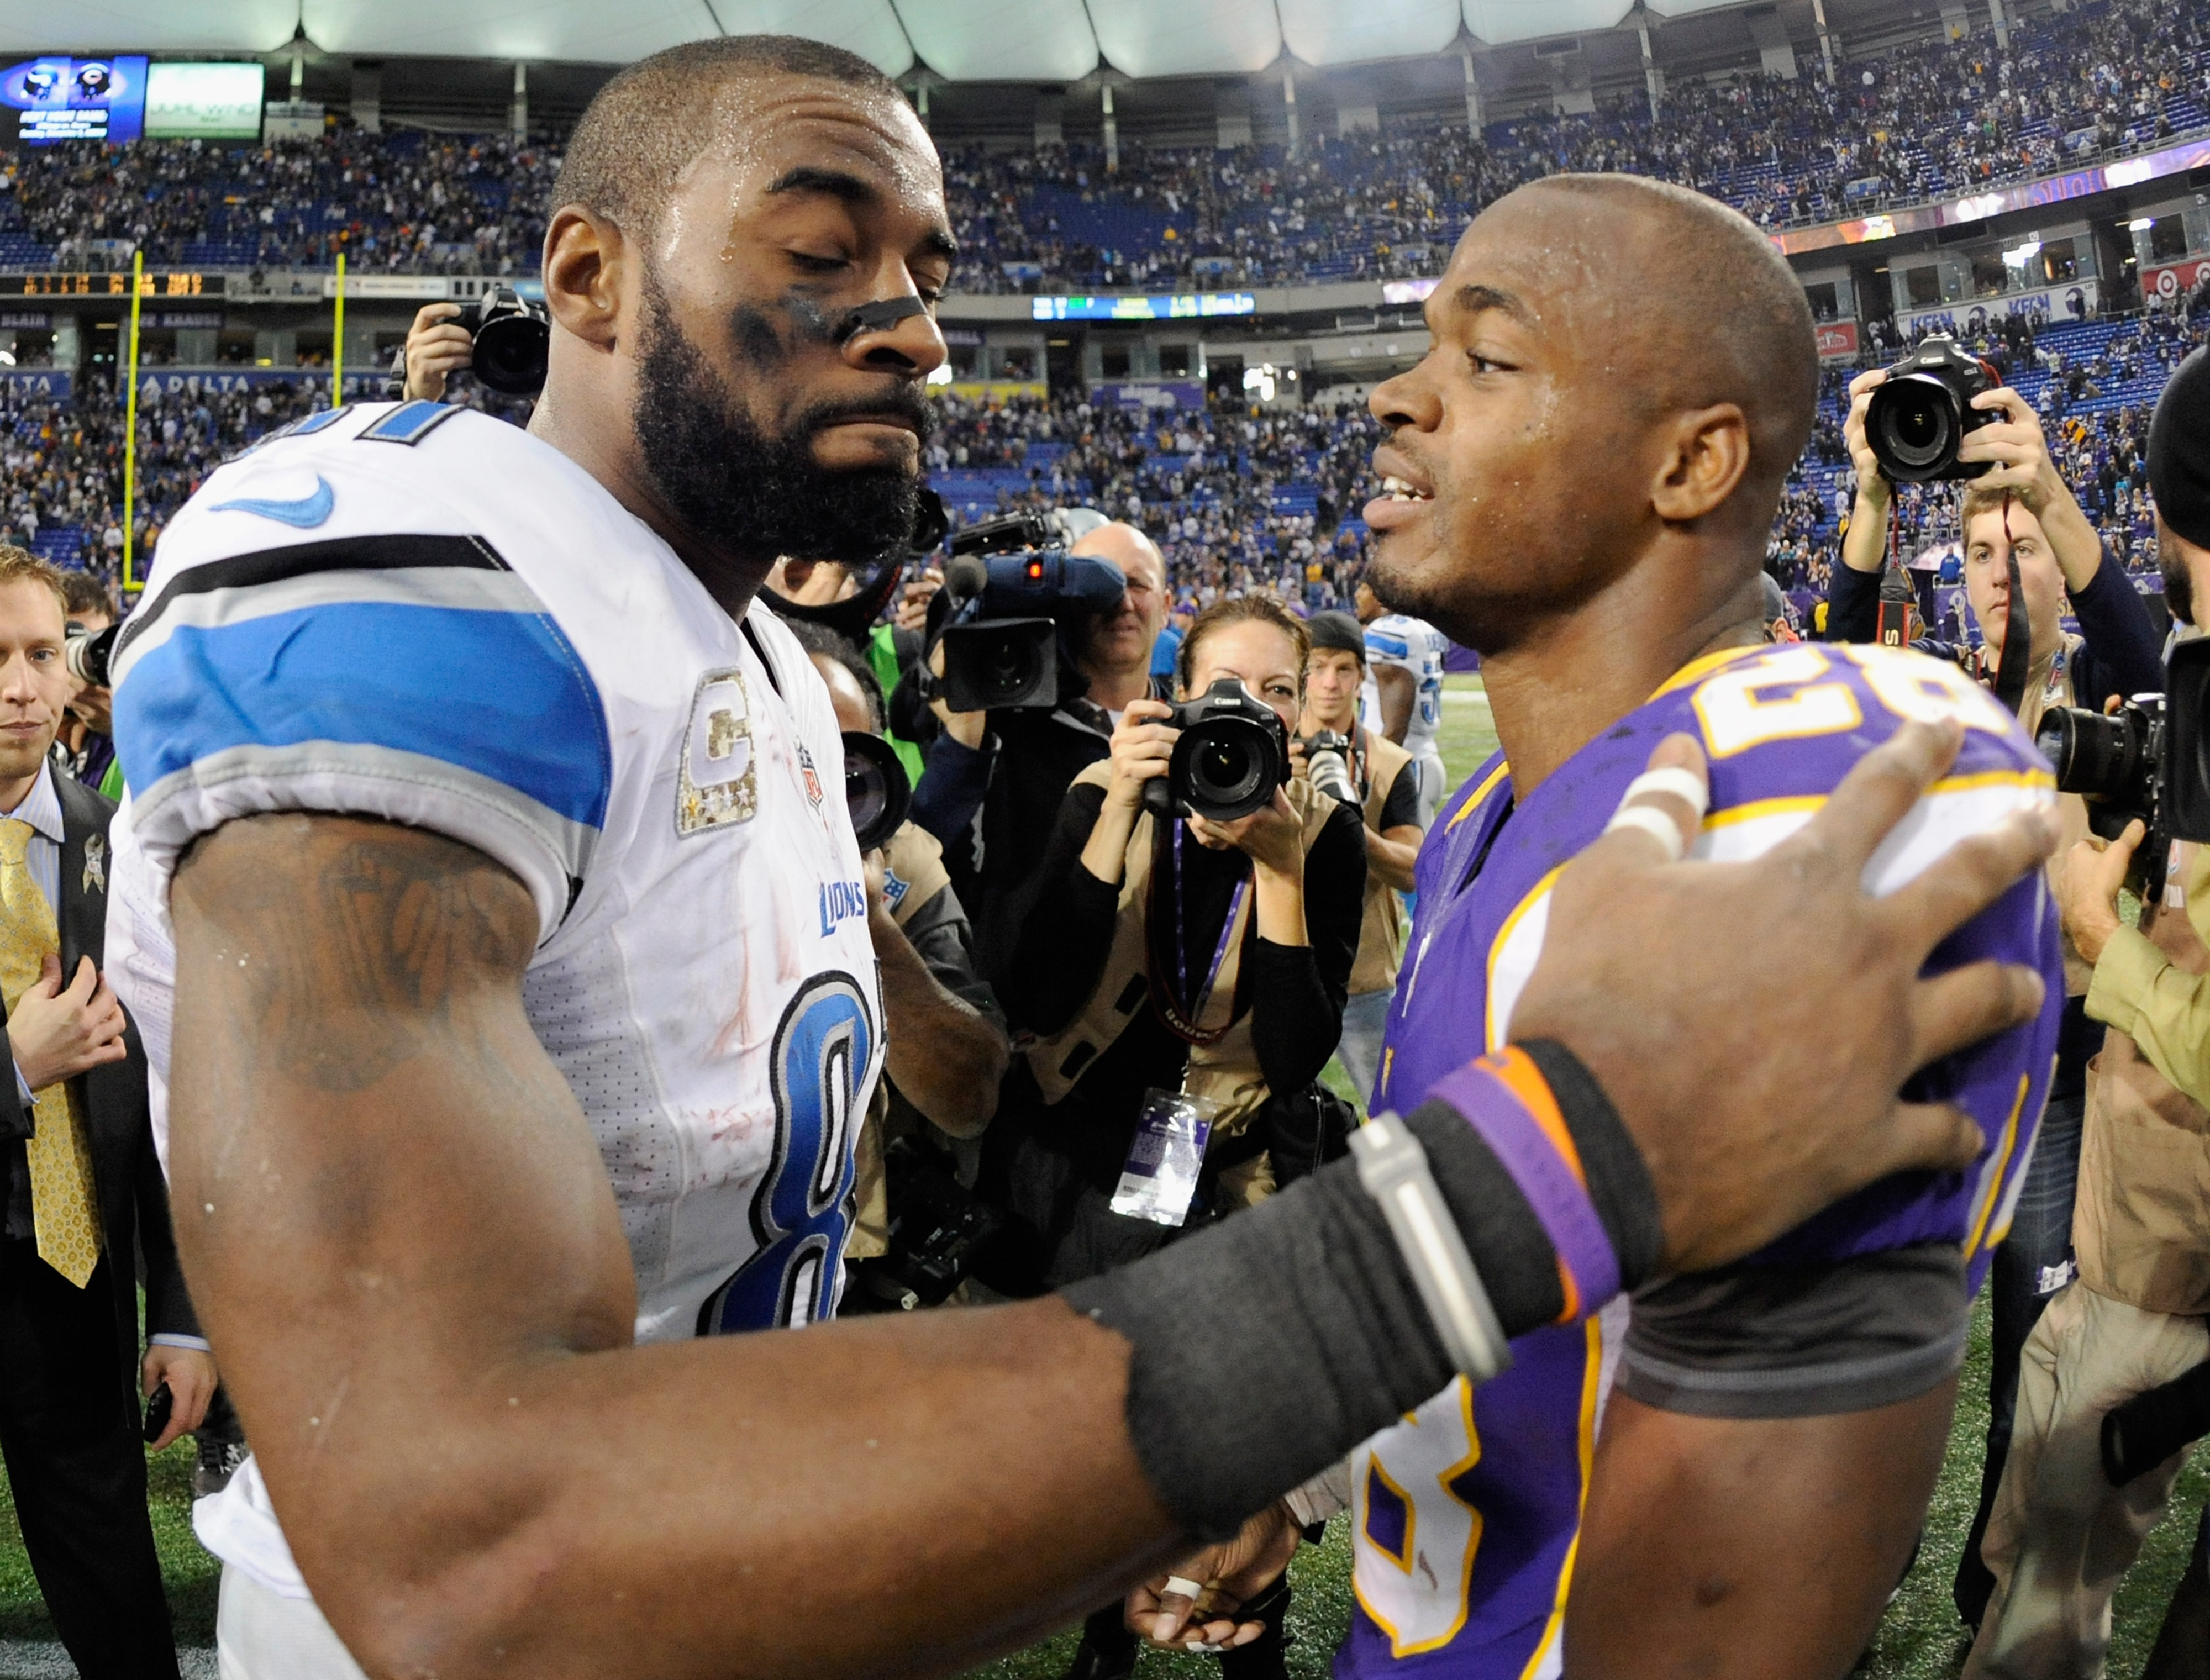 Megatron vs. The Terminator, coming soon to a theater near you.